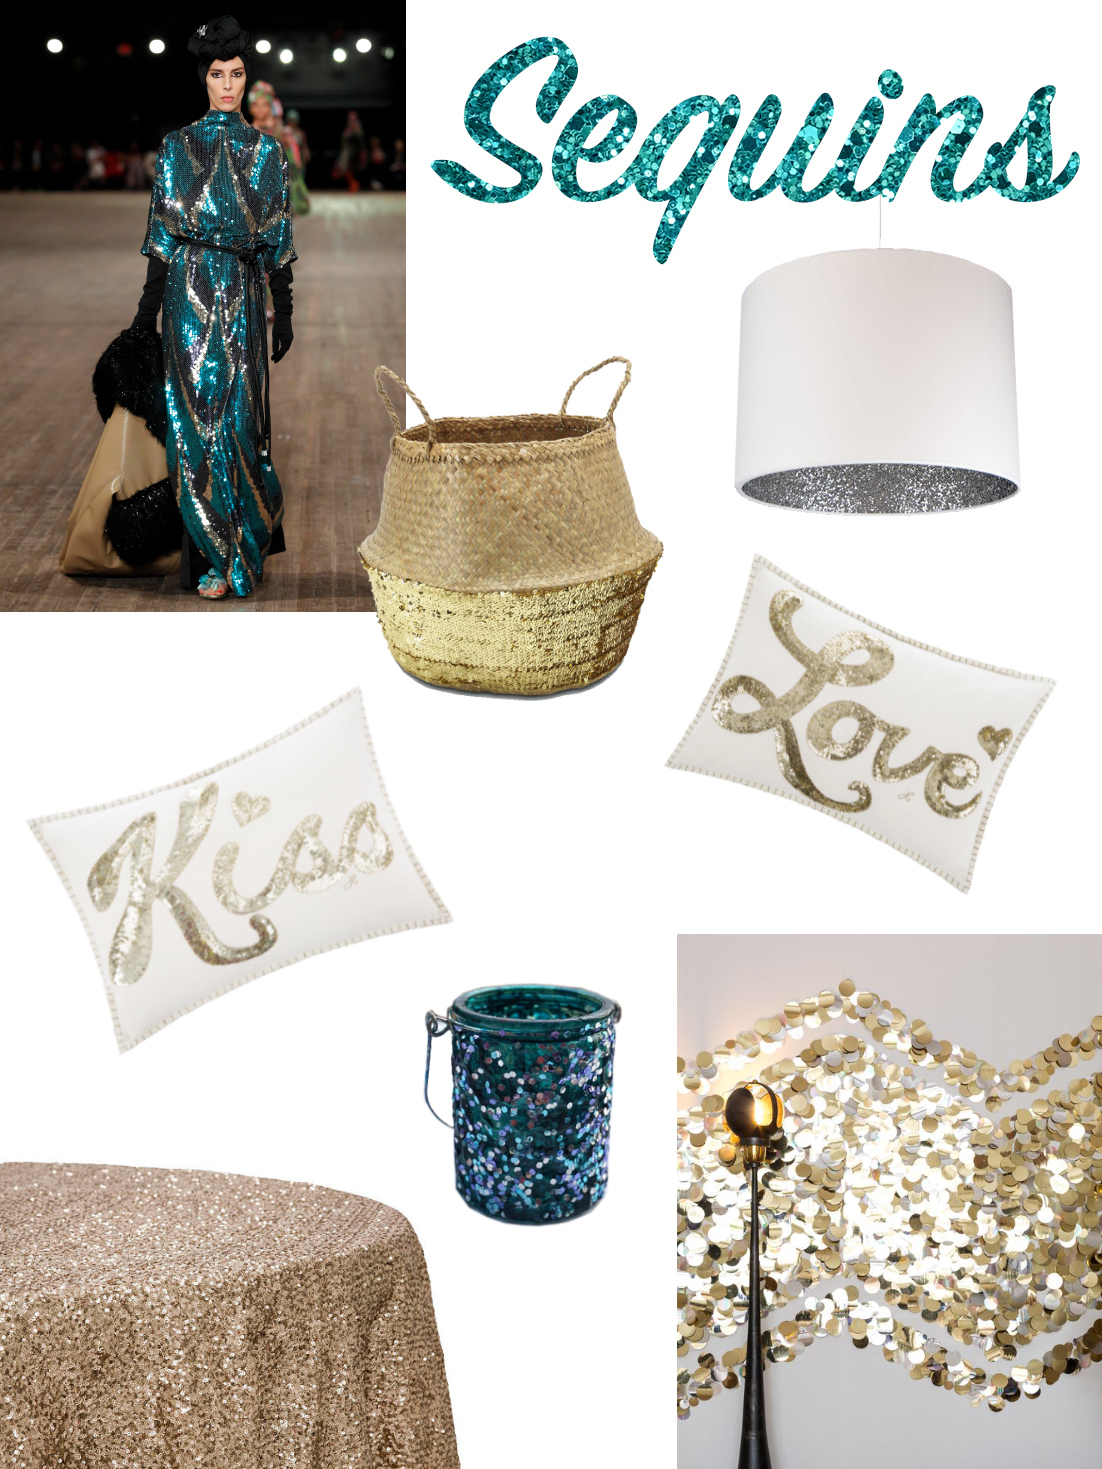 Sequins mood board: a selection of furniture and accessories. Sequins mood board: a selection of furniture and accessories.